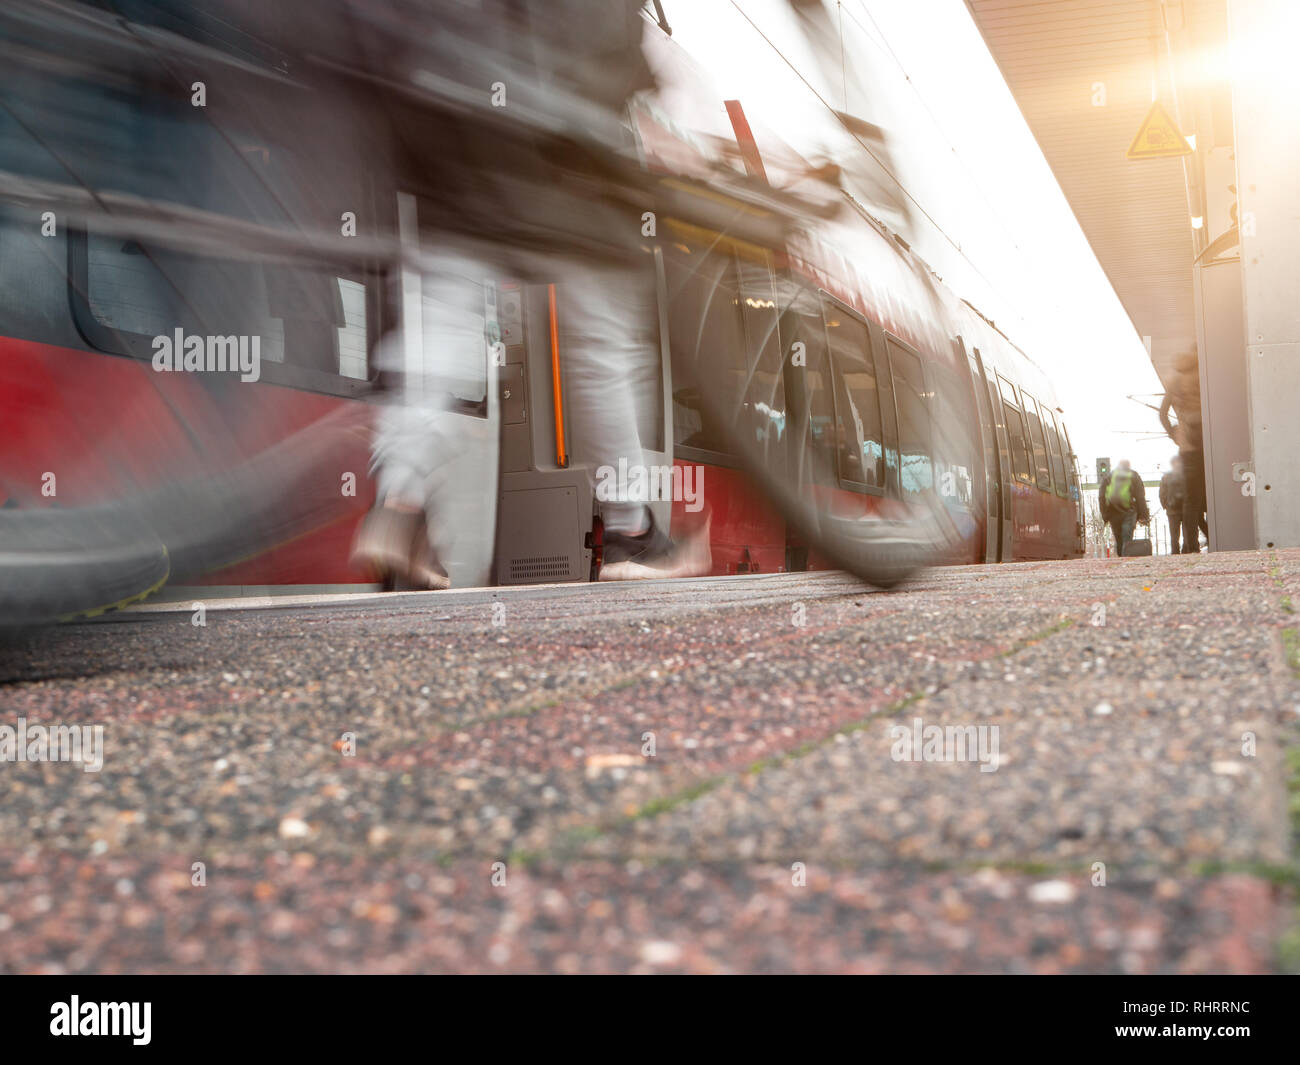 rail platform with red commuter train in motion blur in Cologne, Germany. man with mike blurred in foreground - Stock Image